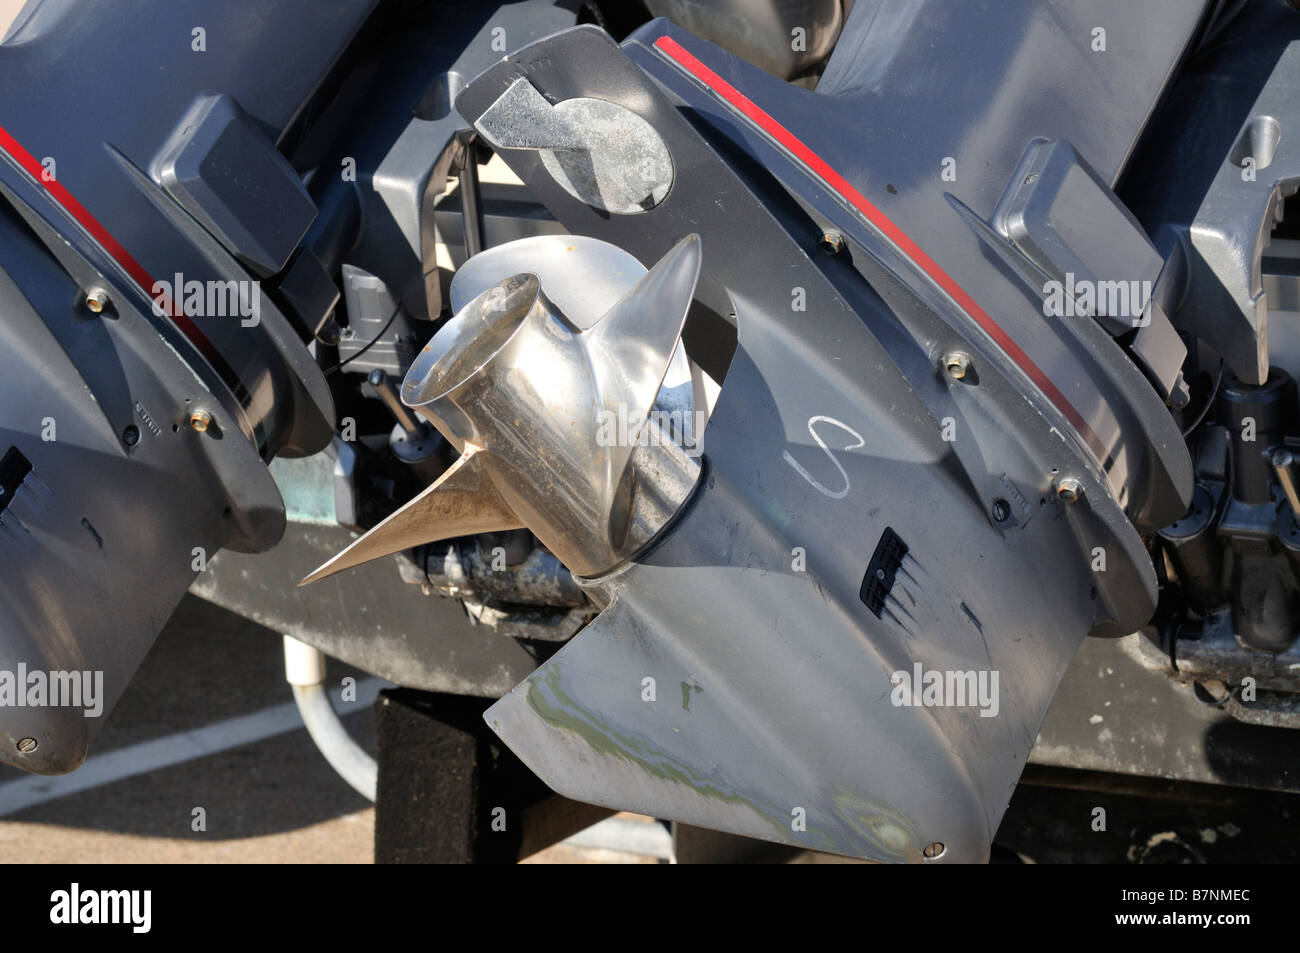 Outboard boat motor showing prop lower unit and zinc out of the water. - Stock Image